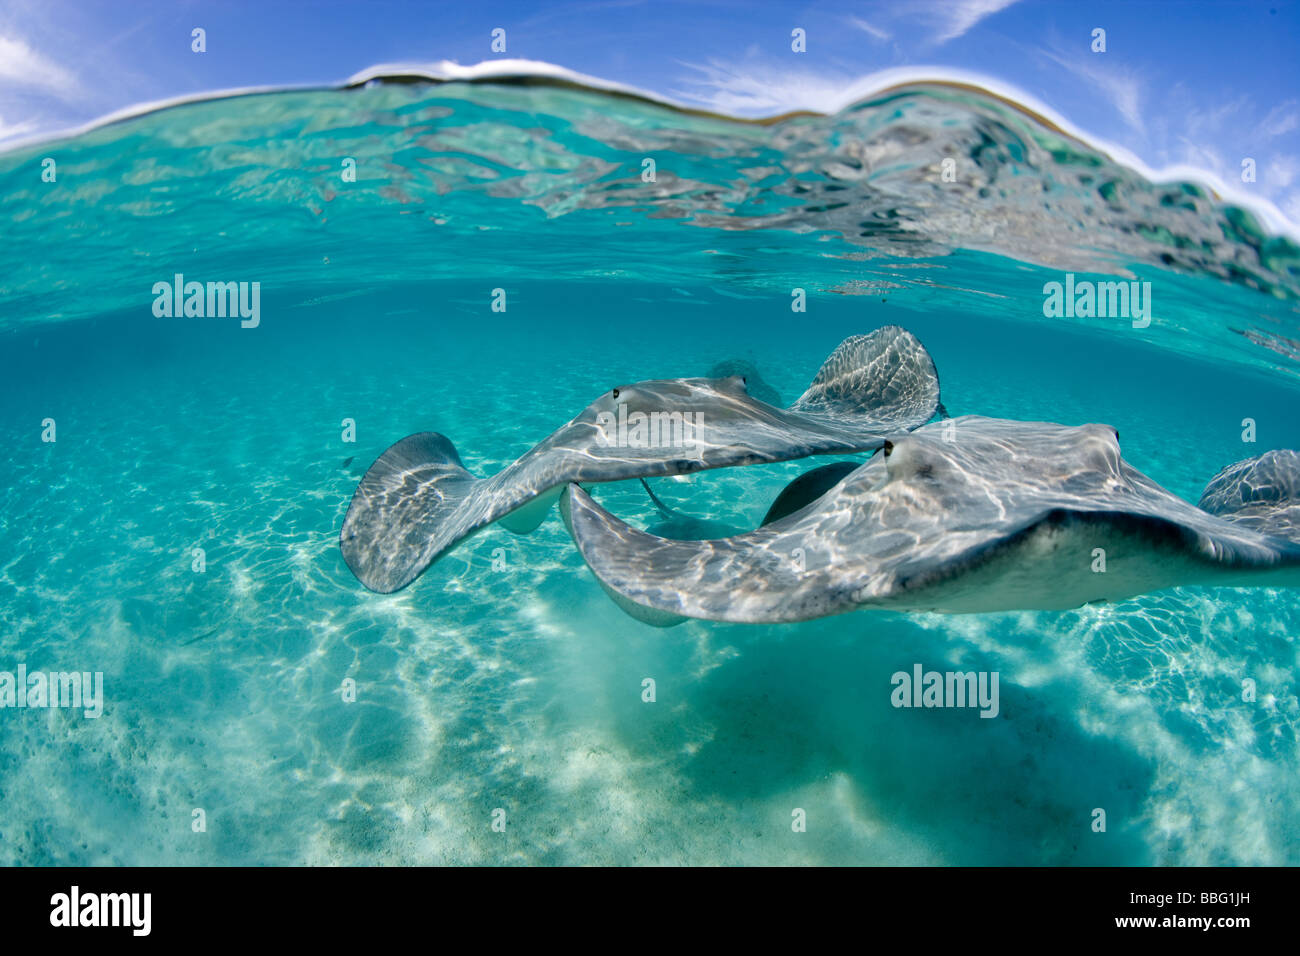 Over/under of stingrays. - Stock Image